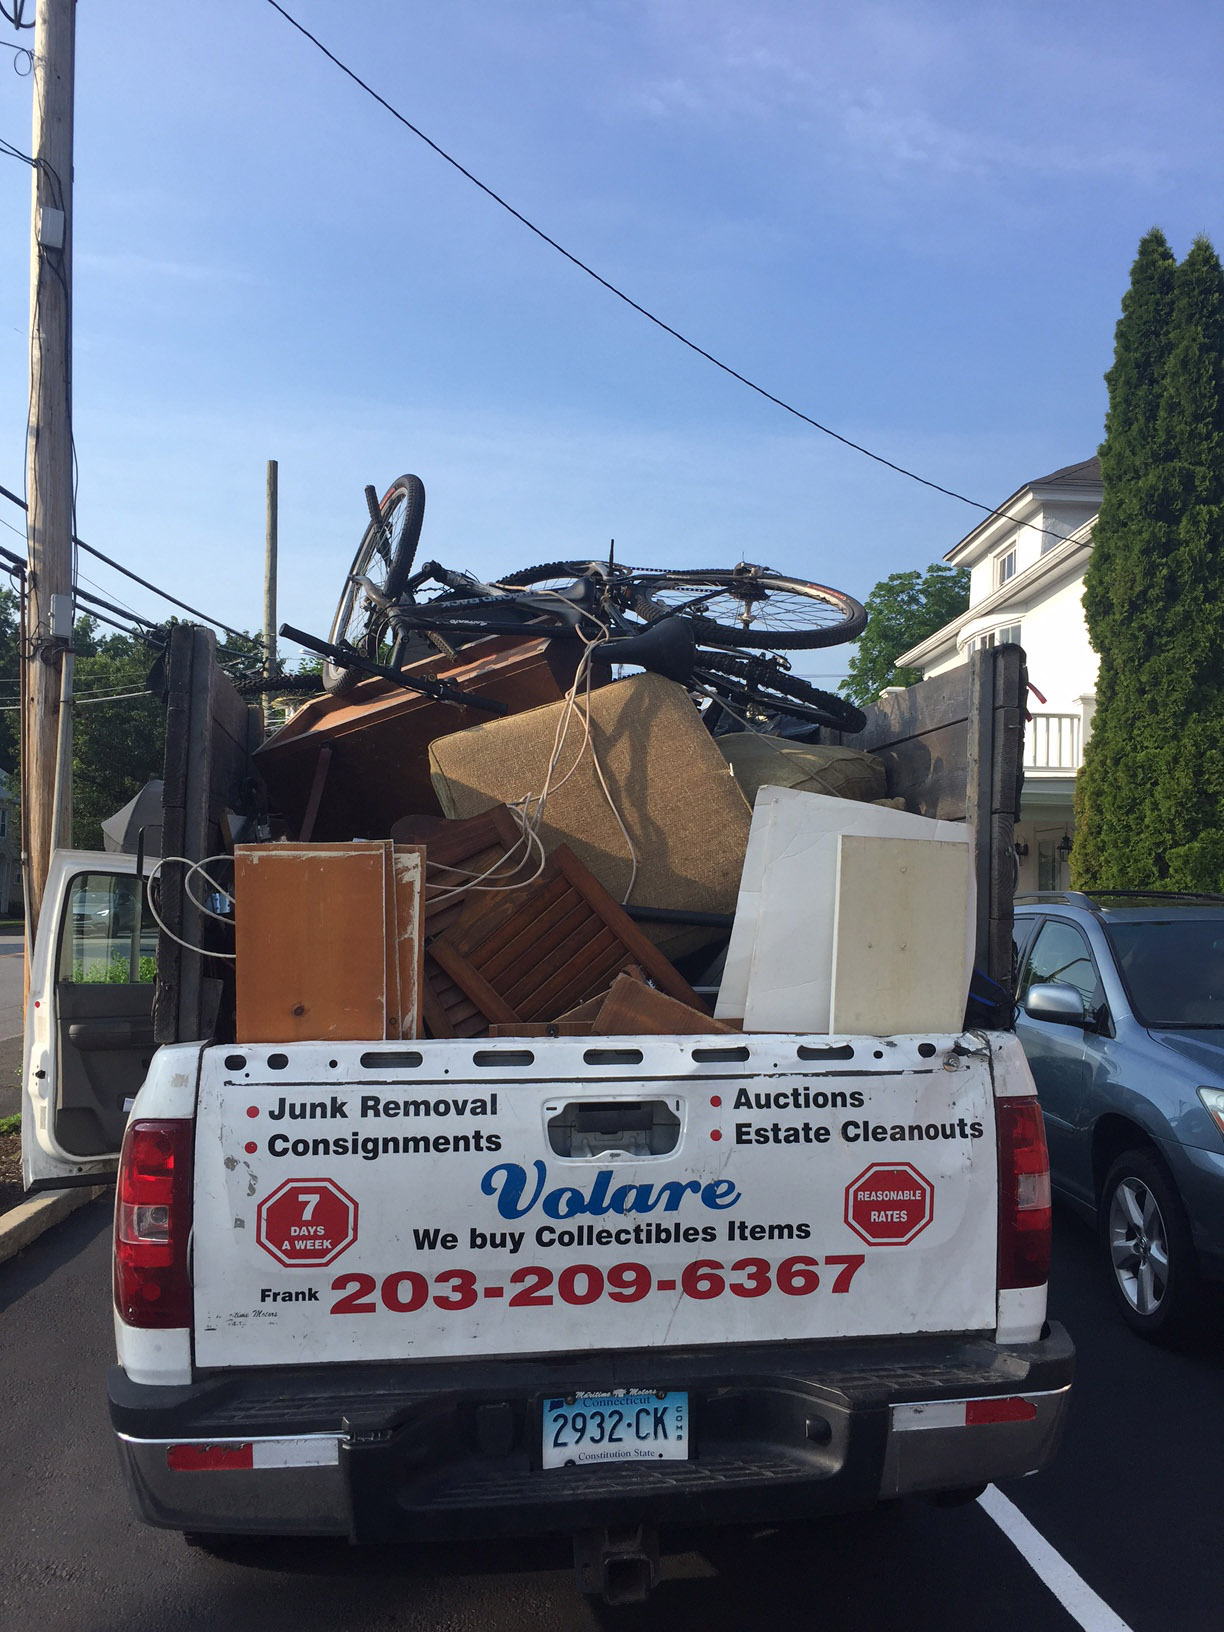 Trusting an Expert to Help with Junk Removal - Frank Loves Junk